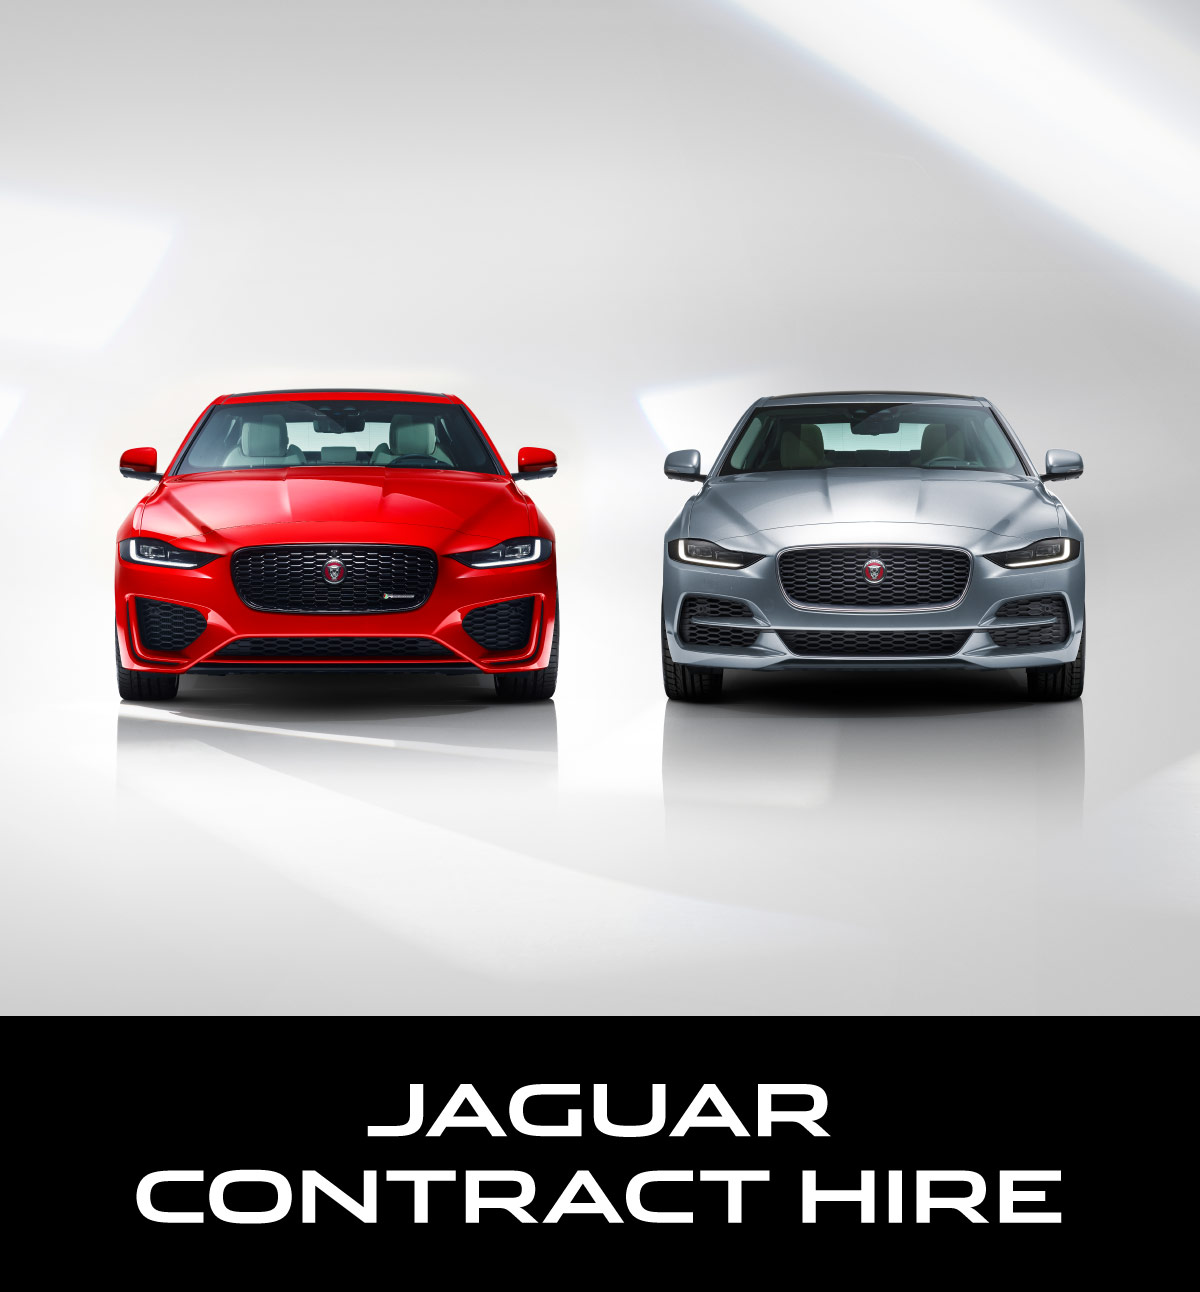 Jaguar Contract Hire